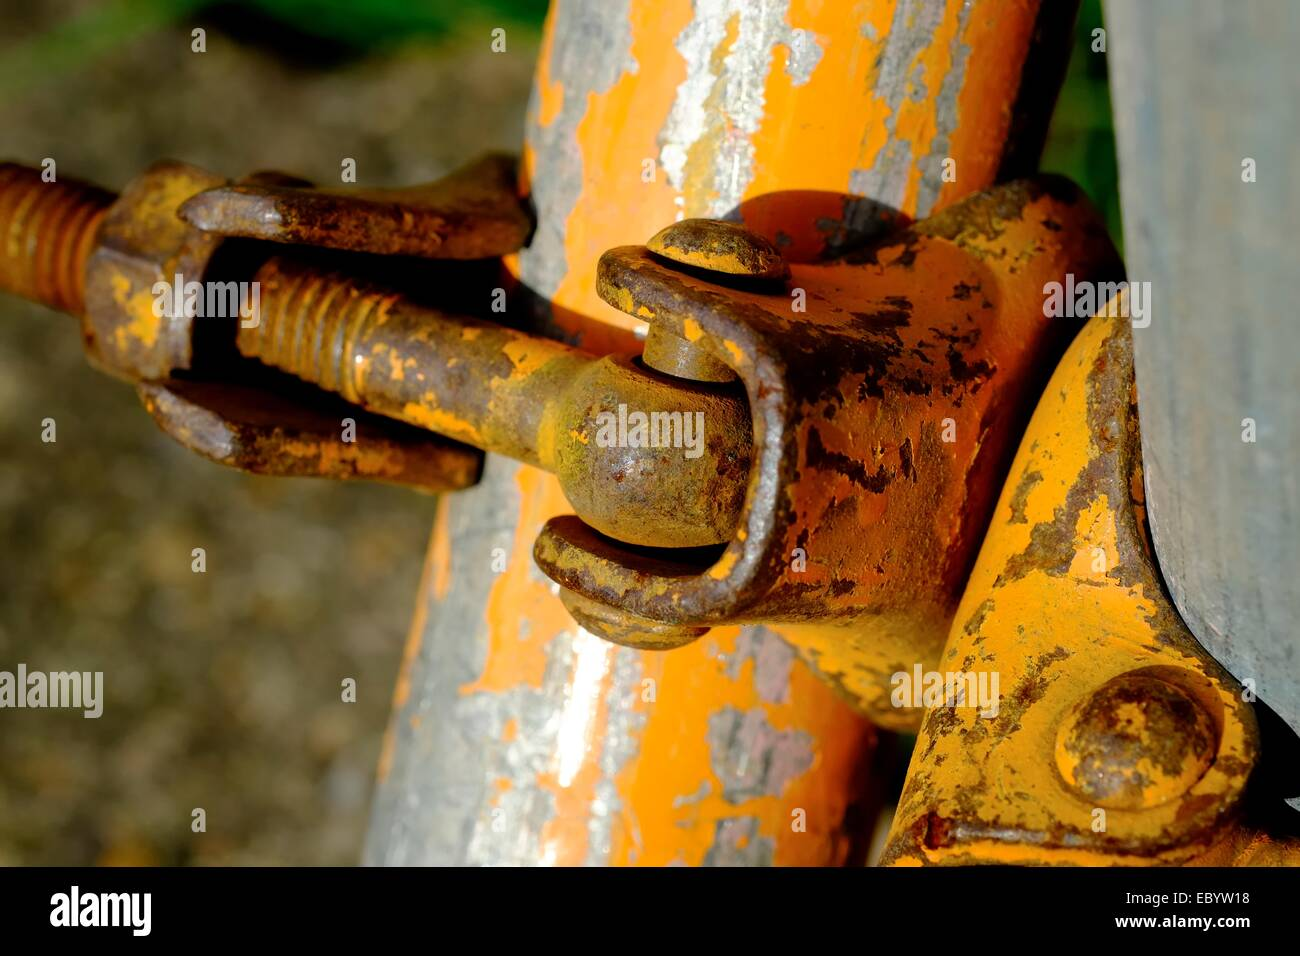 Close up of scaffolding joints in a garden England UK - Stock Image